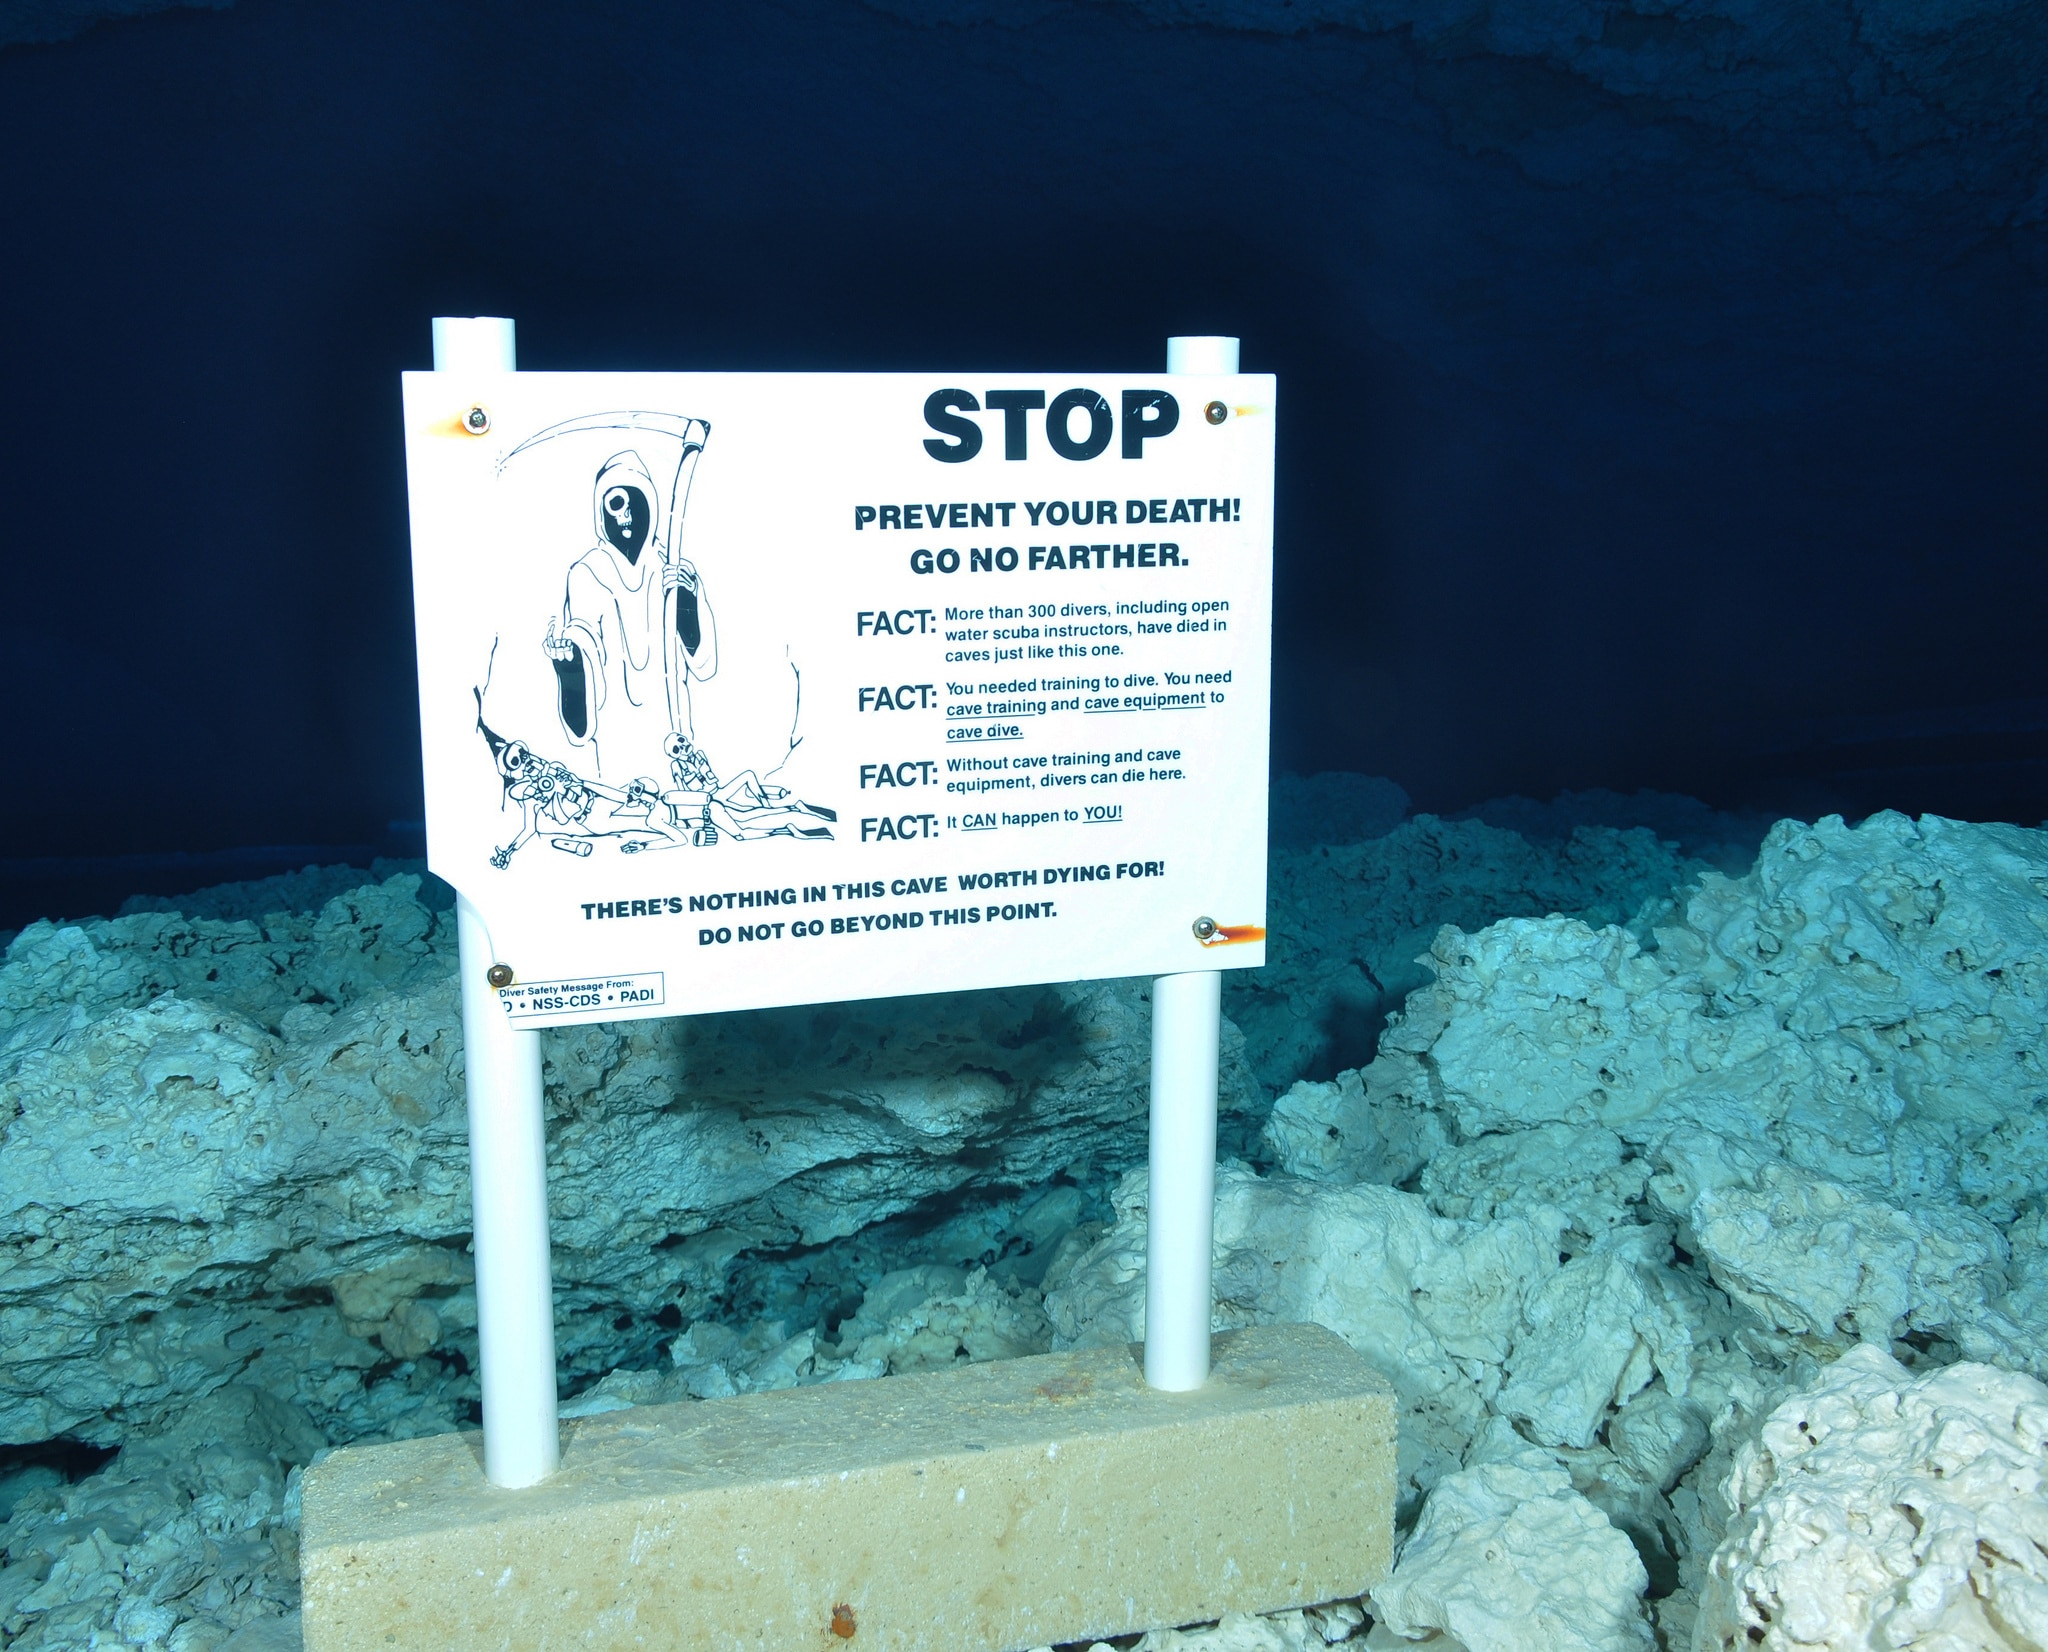 Cave Entrance Warning sign in Cenote cavern